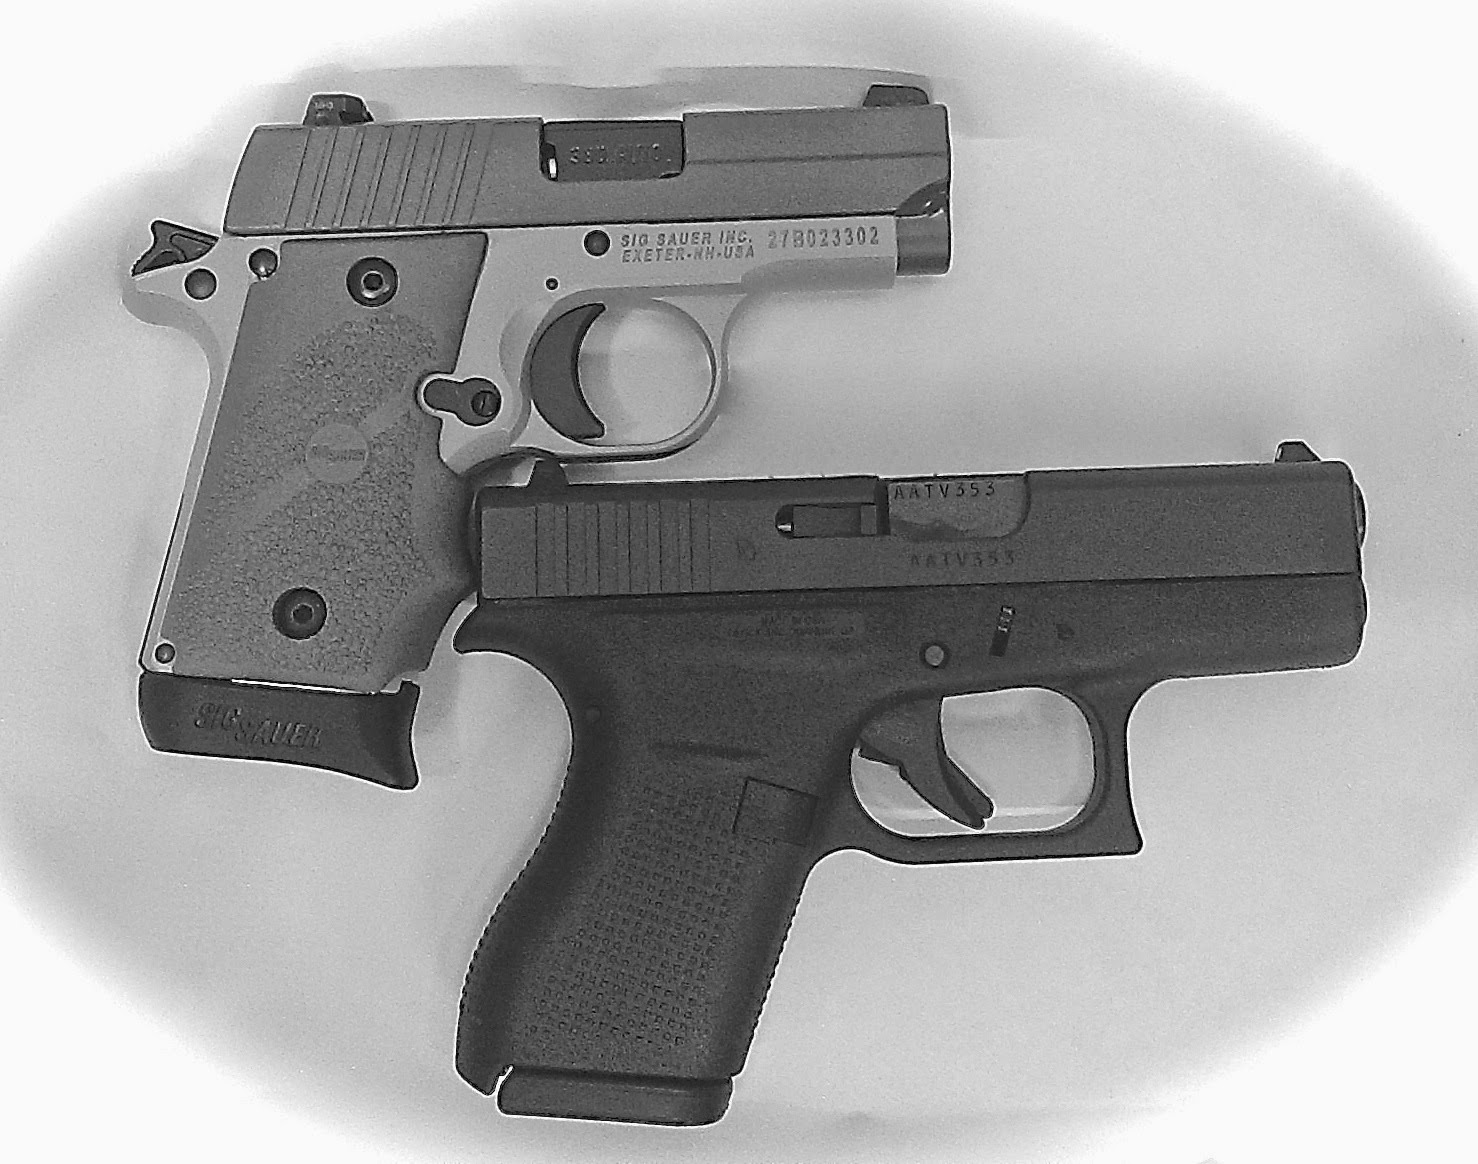 glock model 42 and sig p238 pocket sized 380 s [ 1478 x 1164 Pixel ]